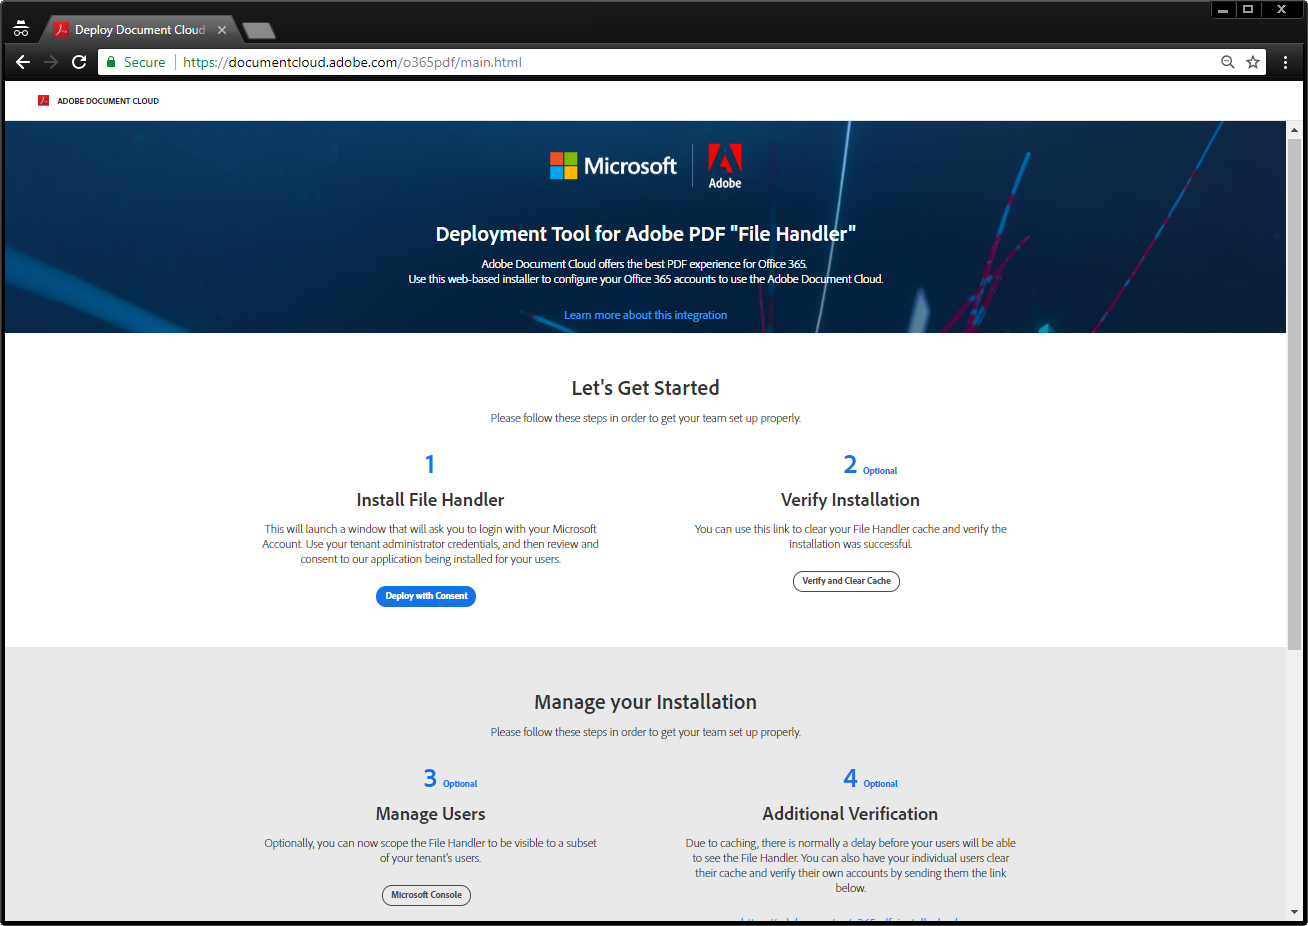 Deployment tool home page